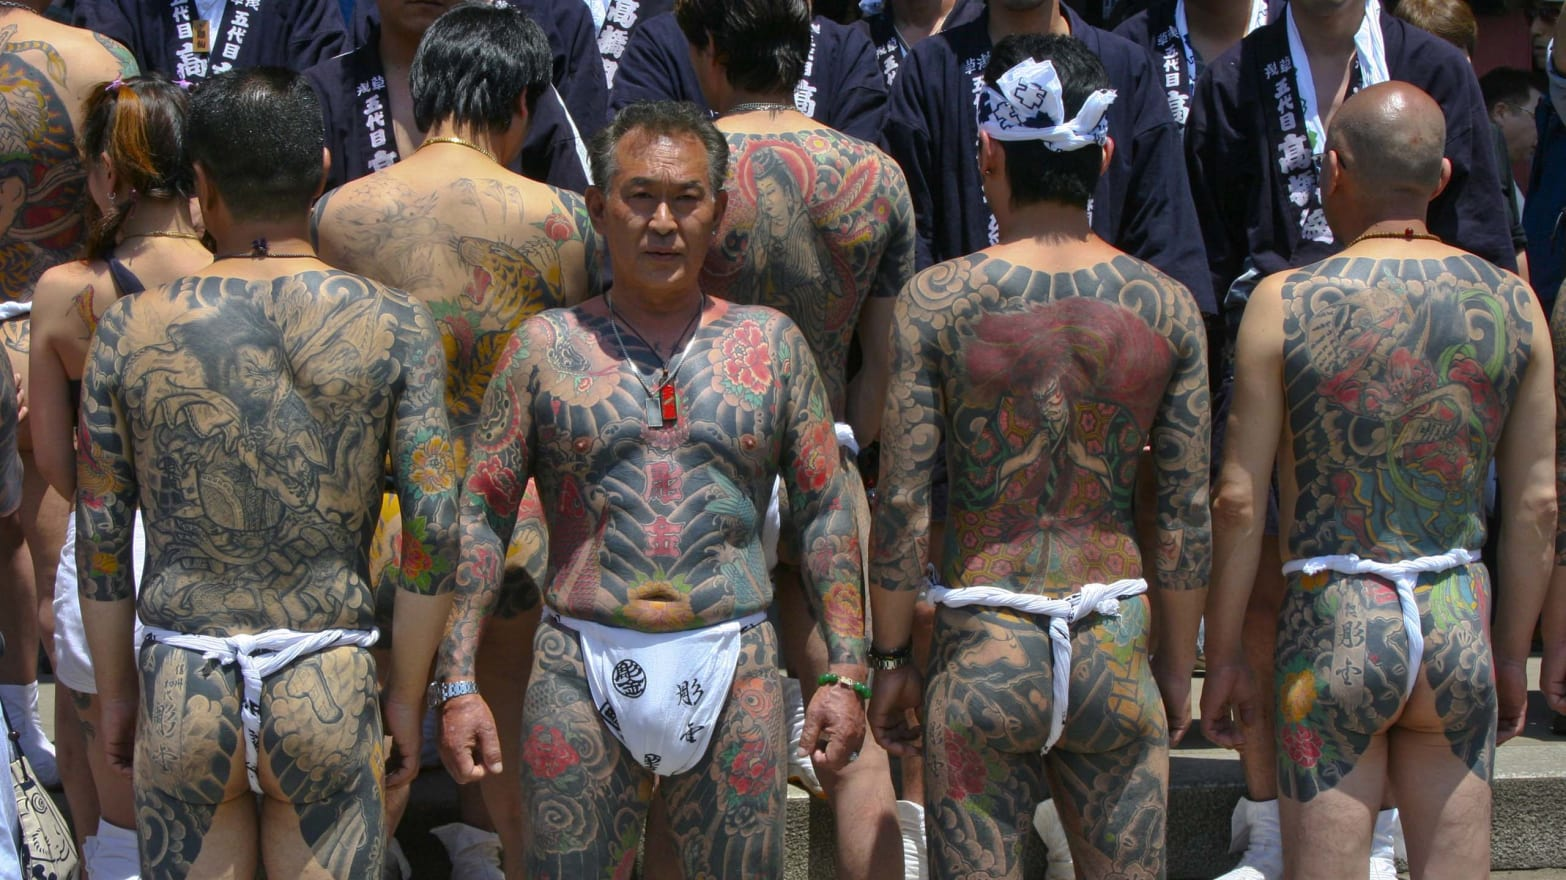 19751c6ca38 unknown/Getty. The number of yakuza ...